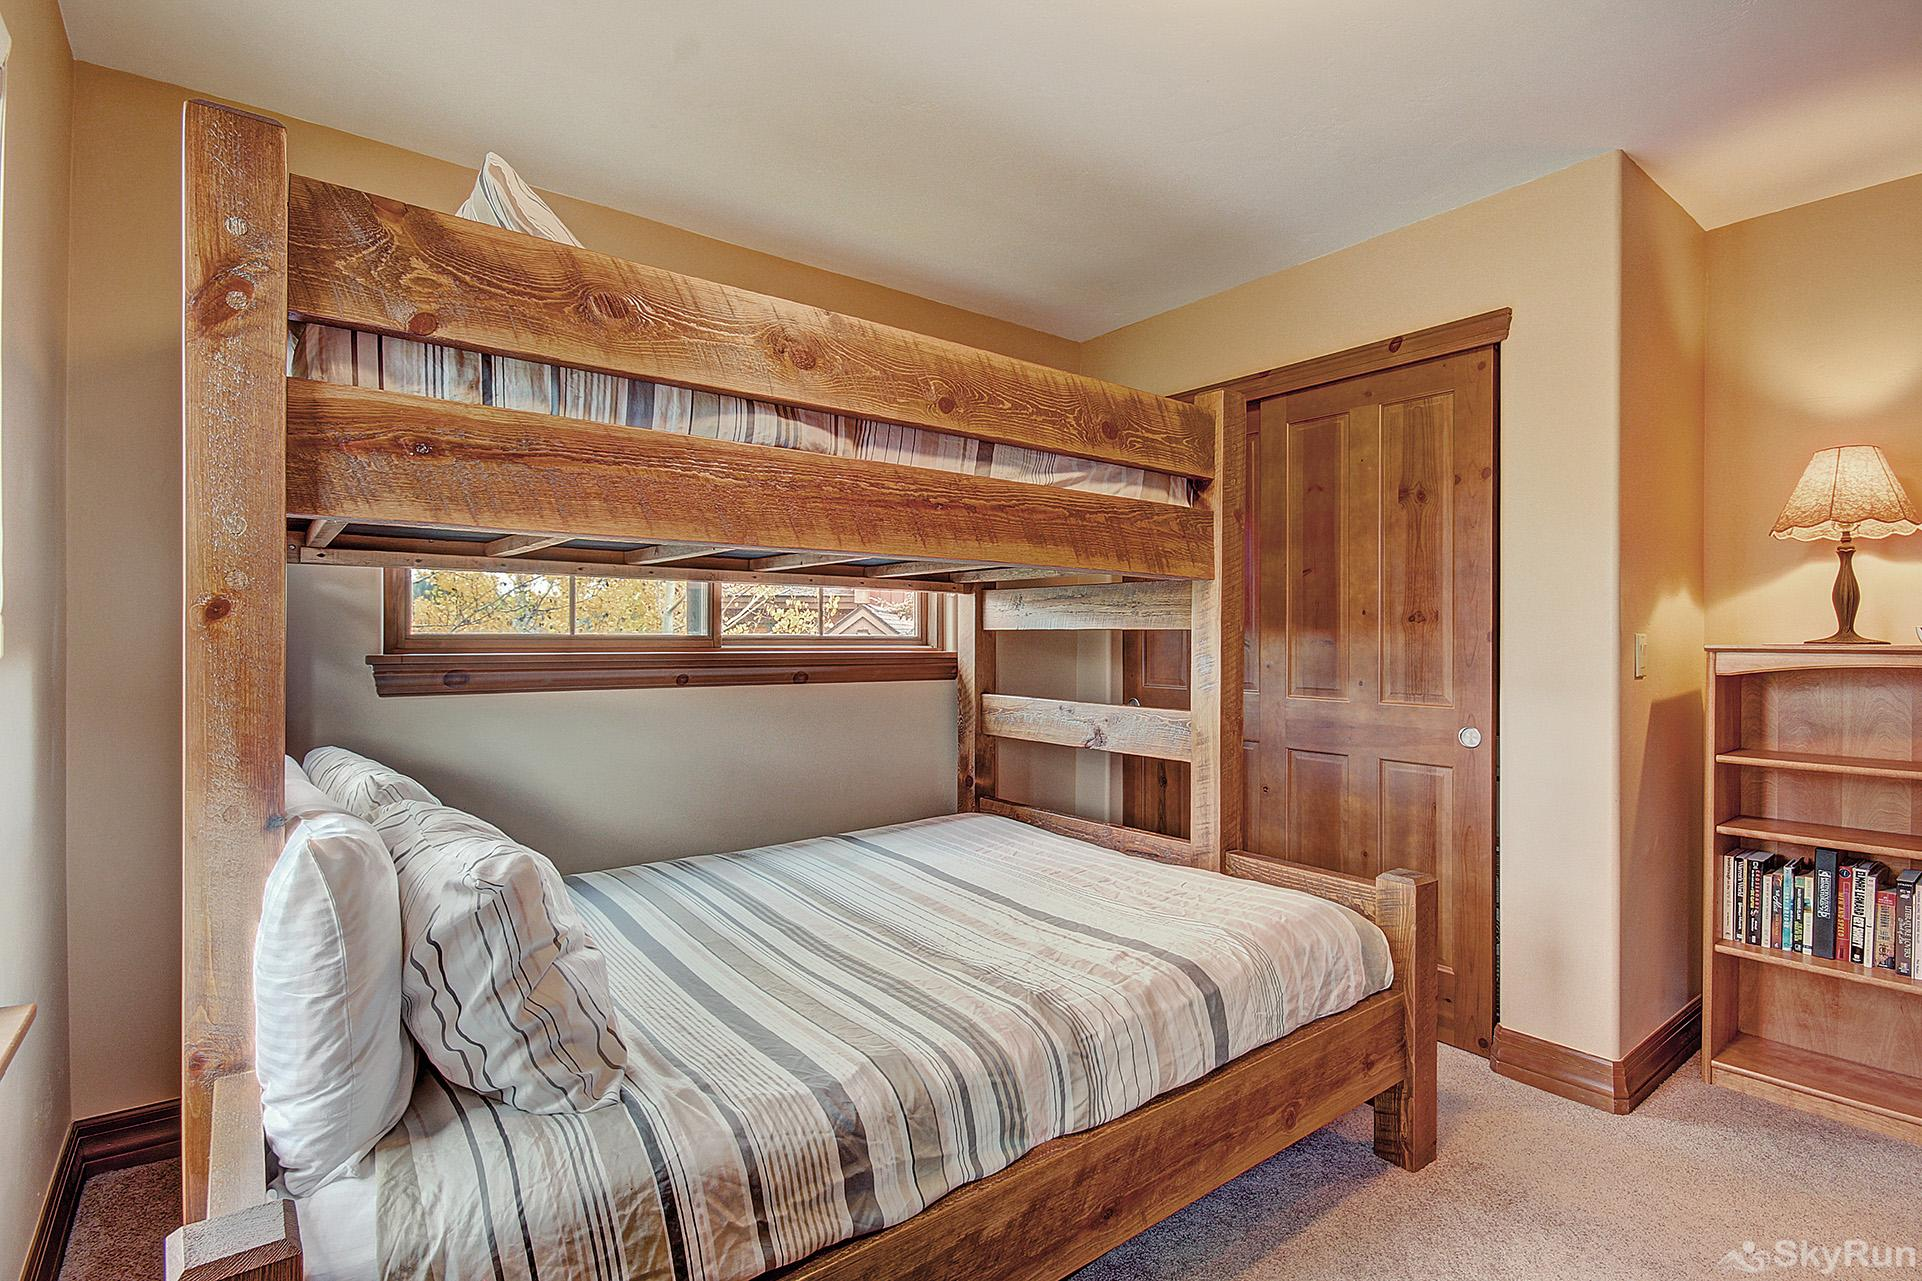 Highland Greens Spruce Upper level bunk bed room